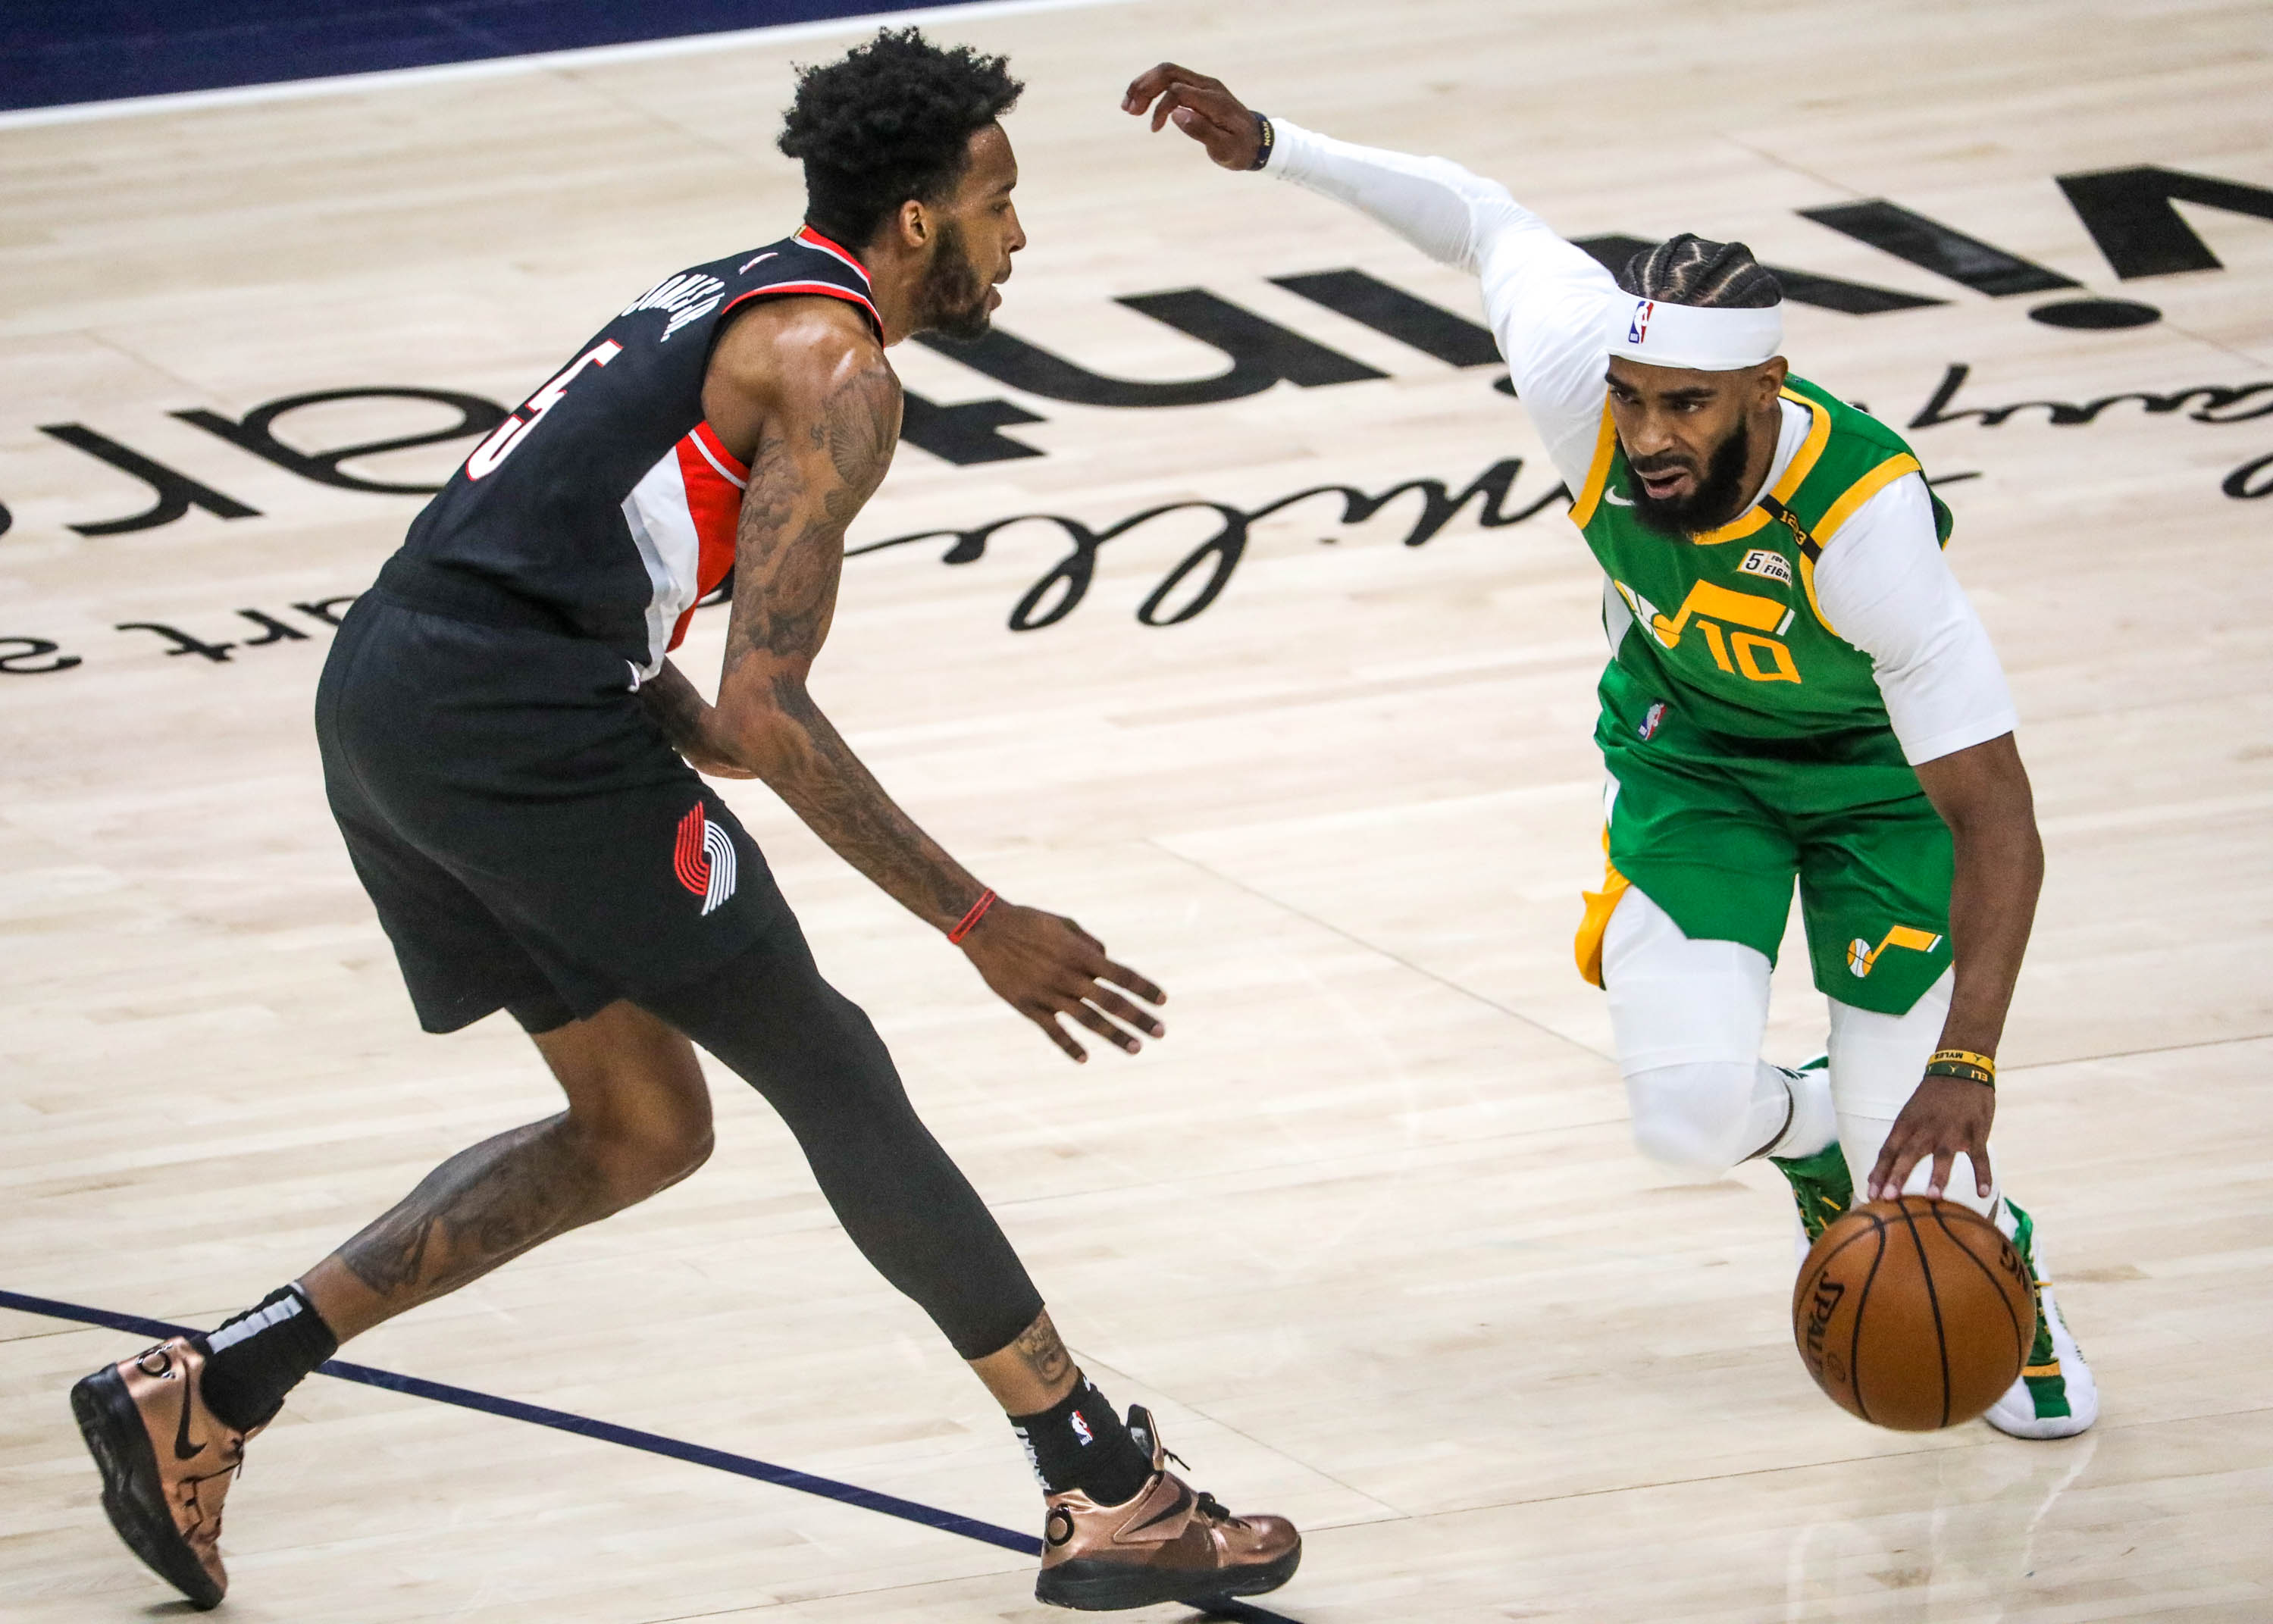 Utah Jazz guard Mike Conley (10) moves past Portland Trail Blazer forward Derrick Jones Jr. (5) during the game at Vivint Smart Home Arena in Salt Lake City on Thursday, April 8, 2021.